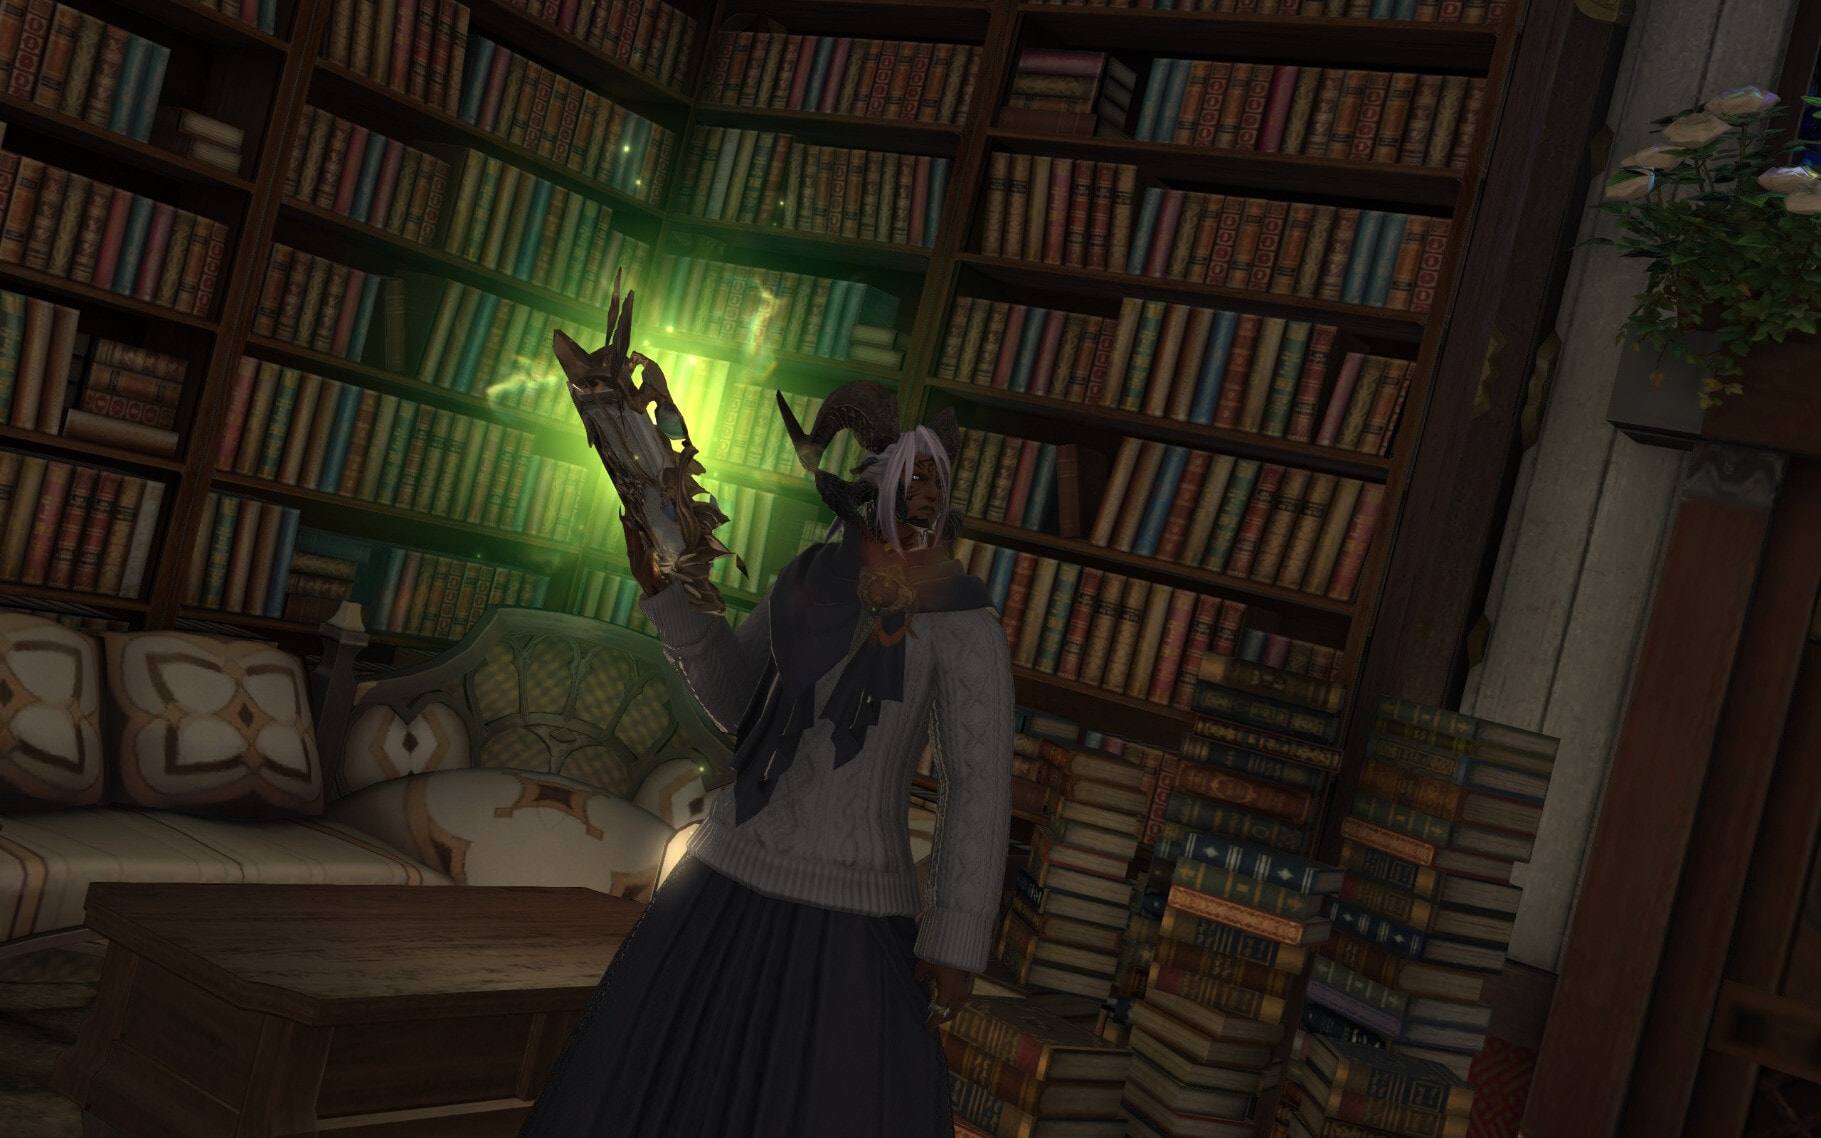 Horned character from FINAL FANTASY XIV wearing a pleated skirt and a sweater with an oversized scarf, holding a glowing book in front of bookshelves.